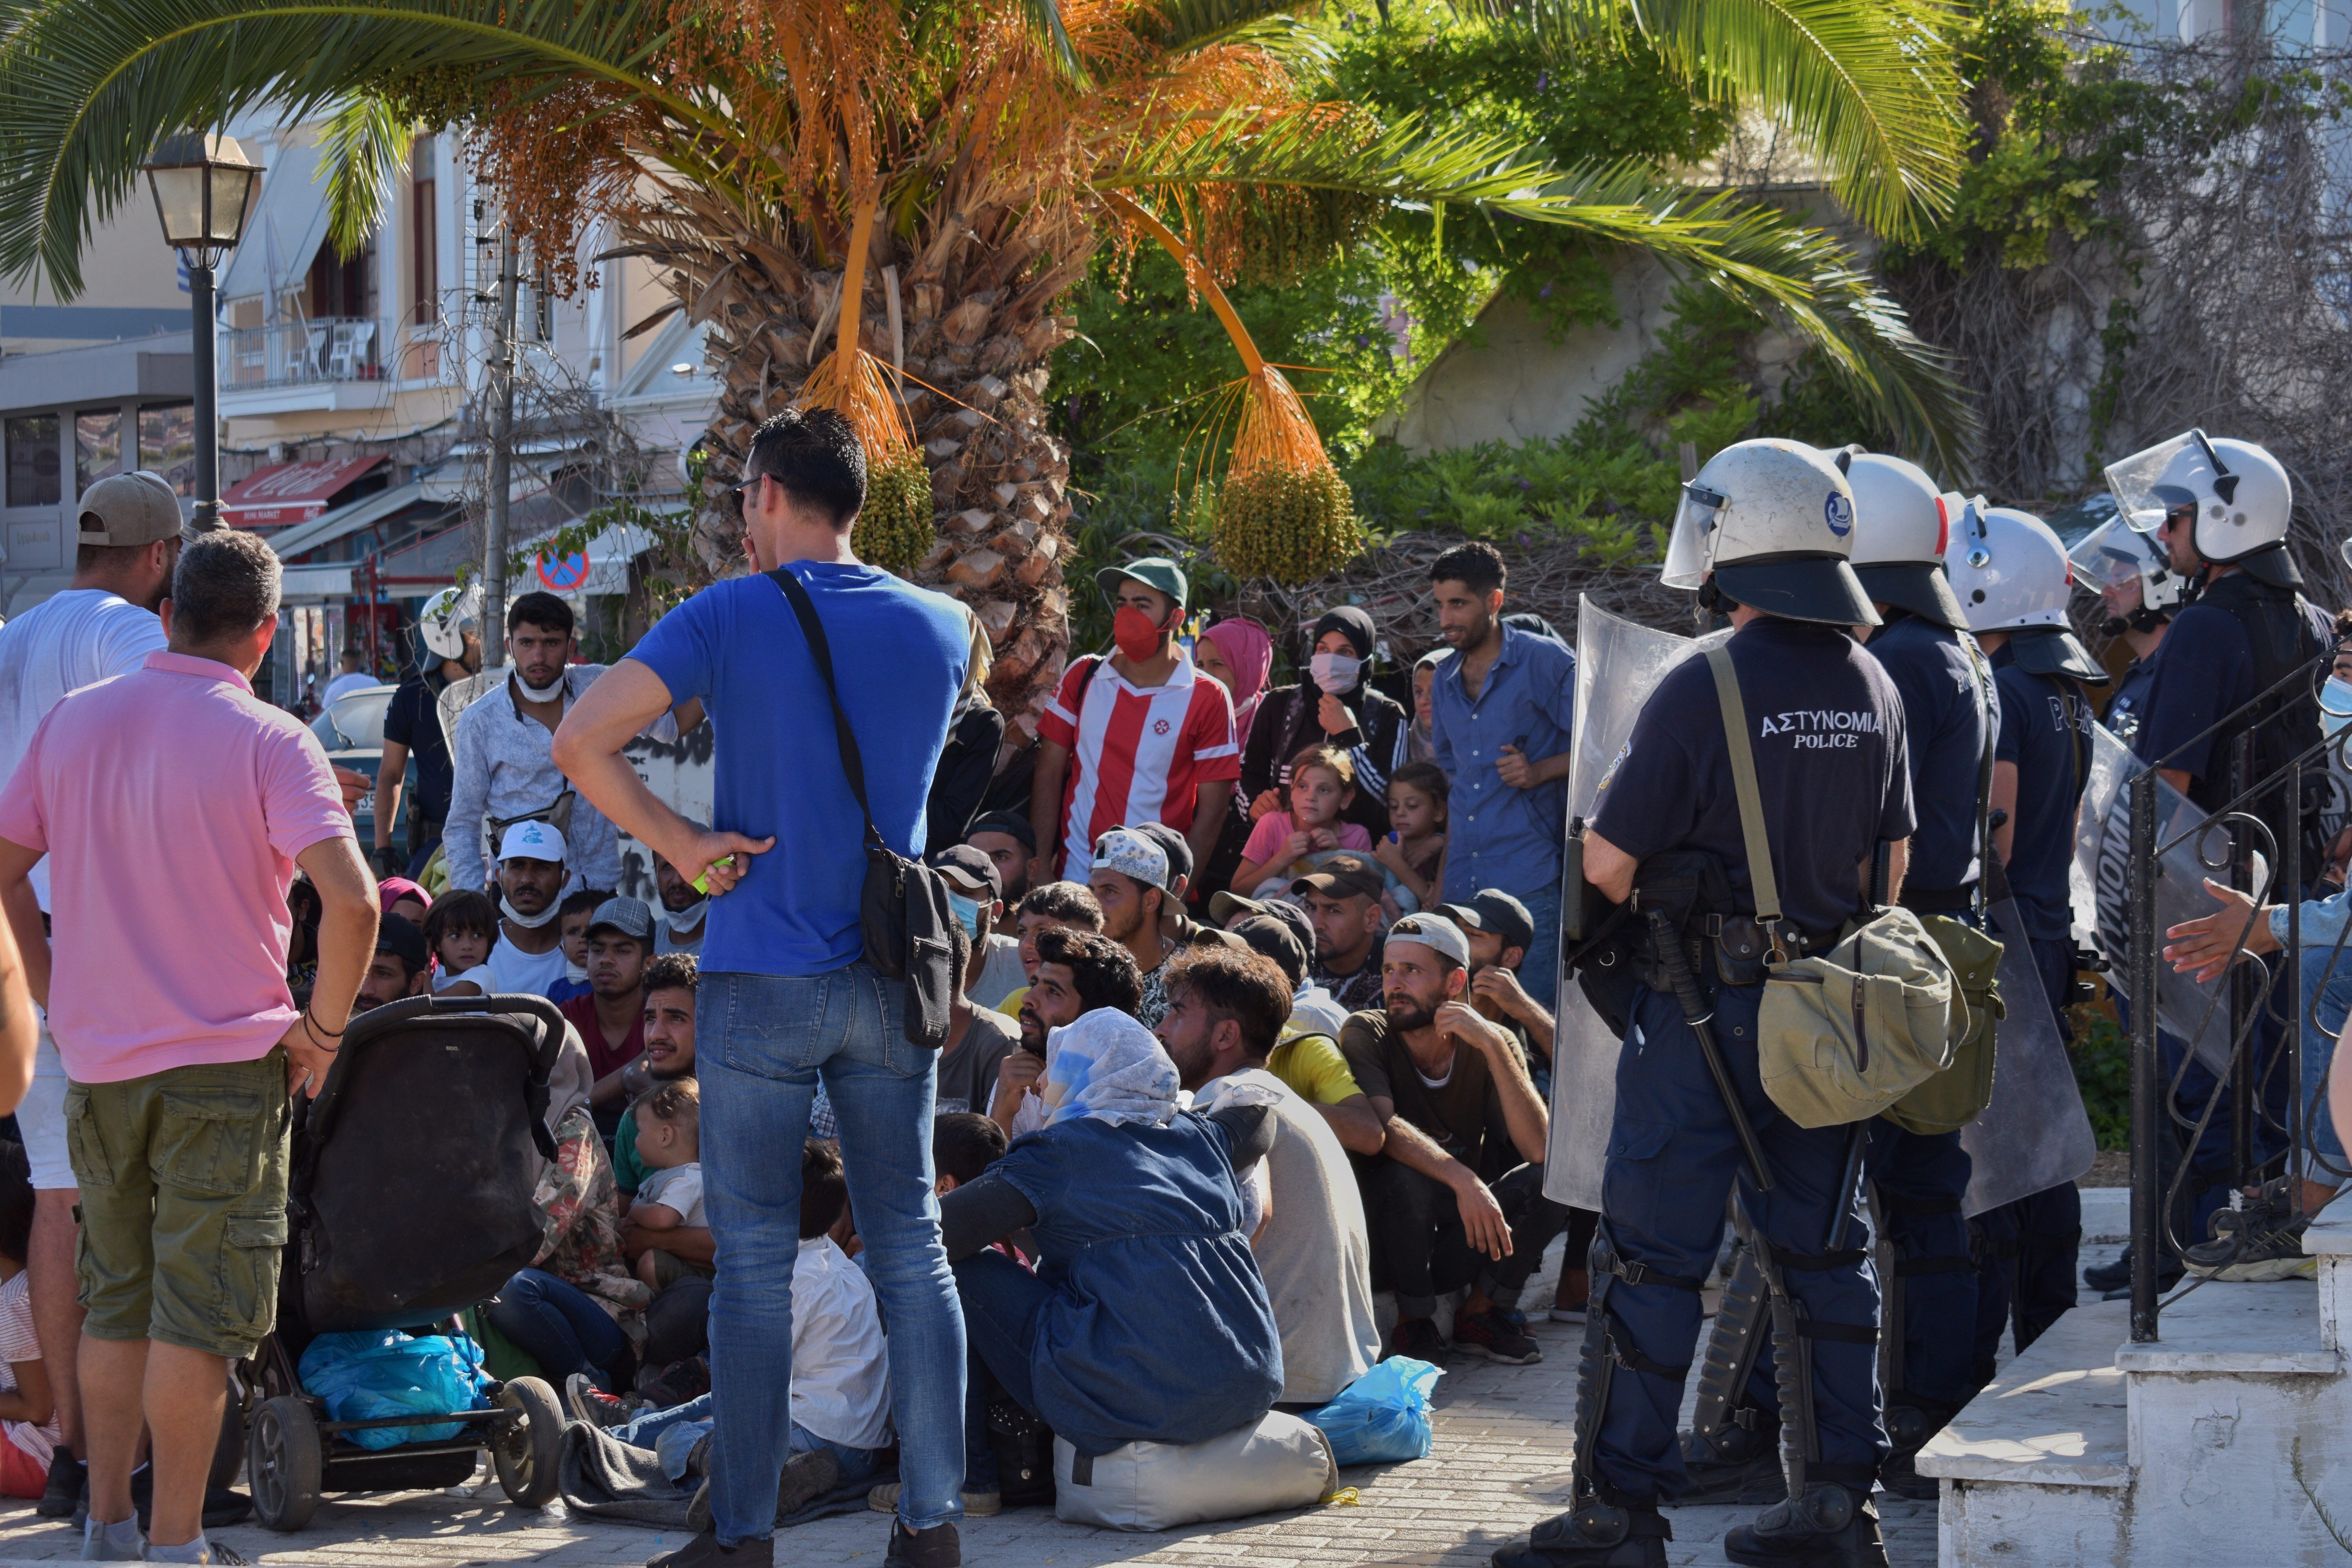 DESPITE THE DISCRIMINATORY LOCKDOWN ON CAMPS AND HOSTILITY TOWARDS MIGRANTS AND THOSE IN SOLIDARITY WITH THEM, RESISTANCE GROWS